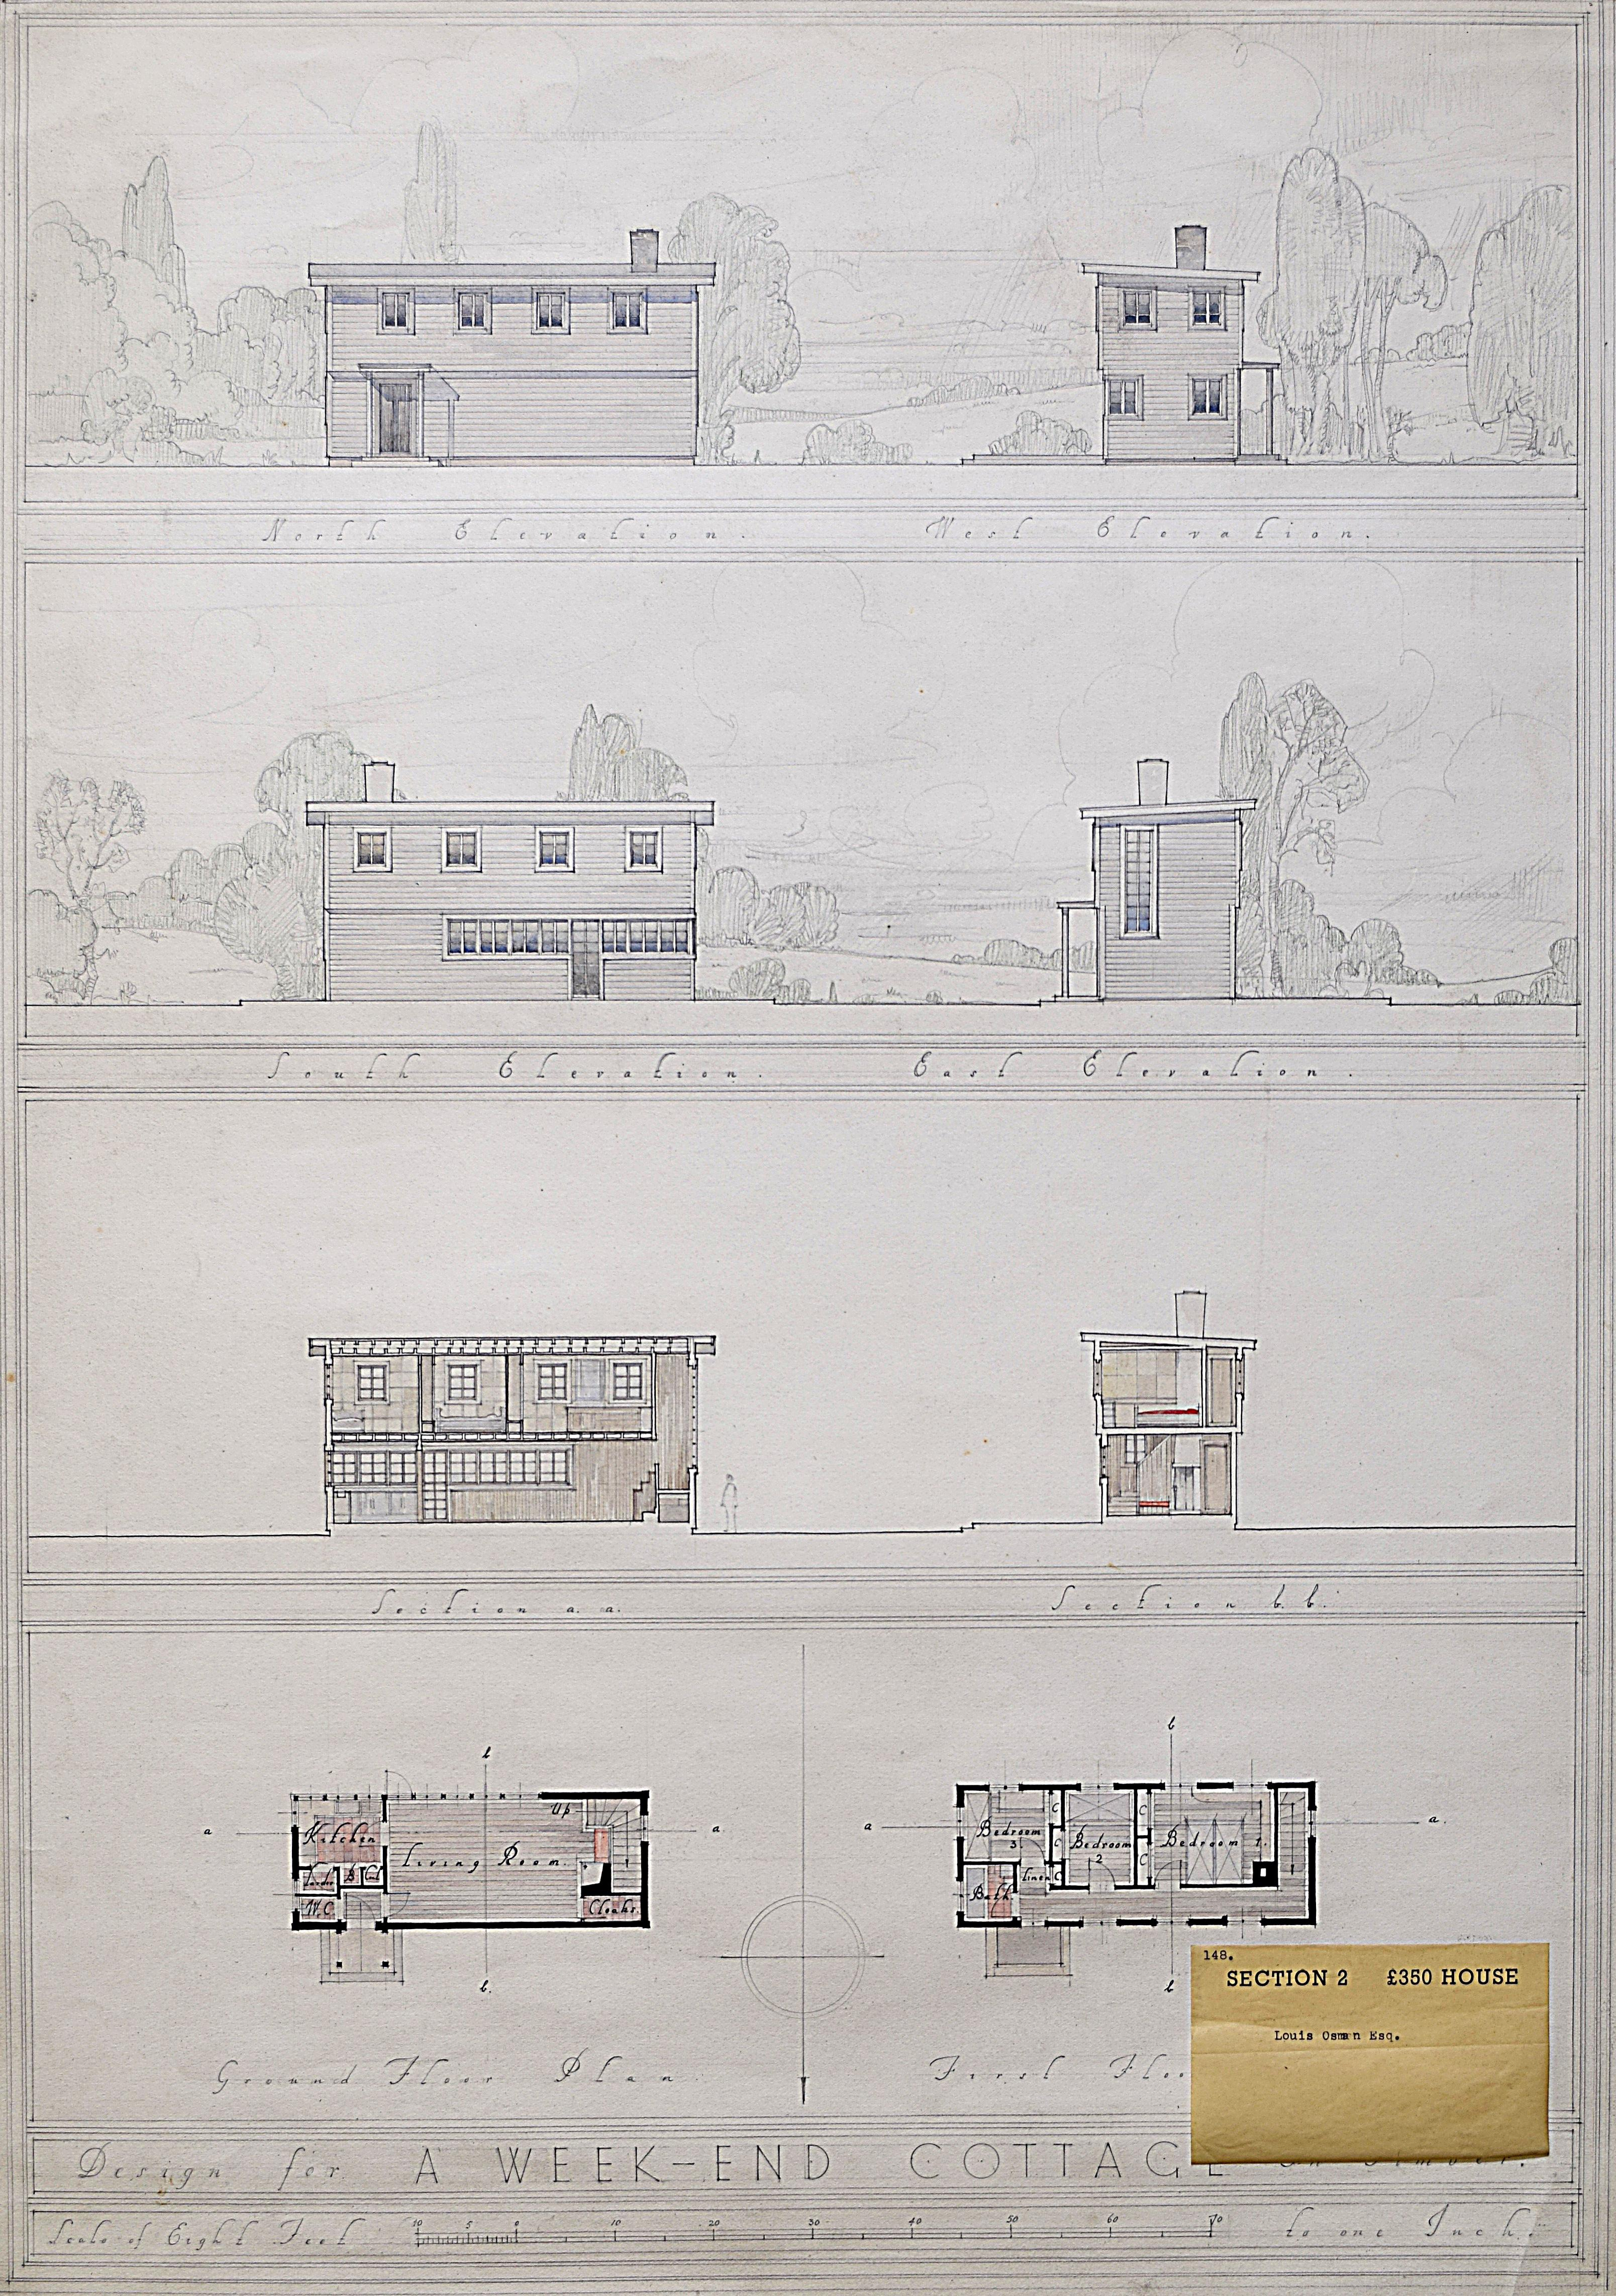 Louis Osman architectural design for Modernist House Weekend Cottage 1930s